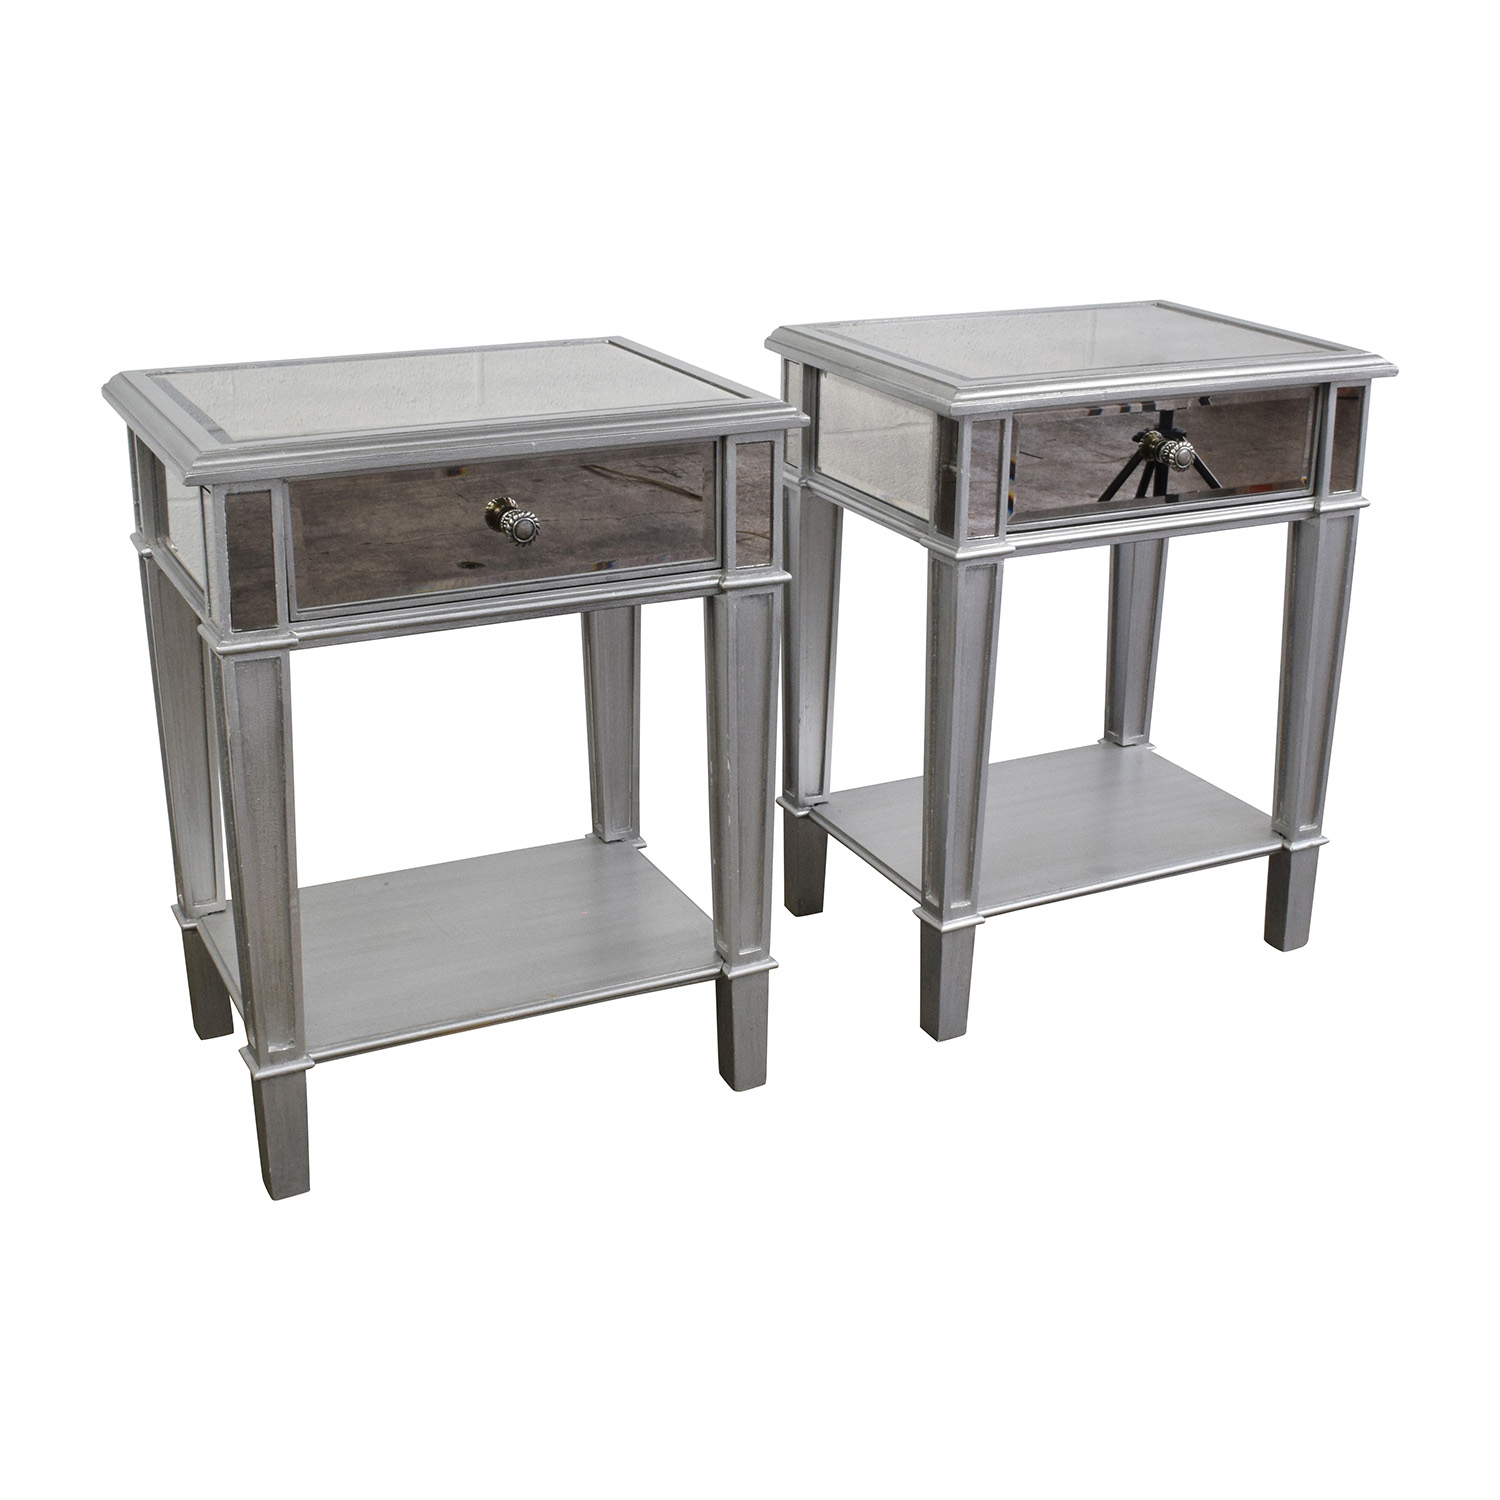 Pier 1 Pier 1 Hayward Mirrored Nightstands on sale